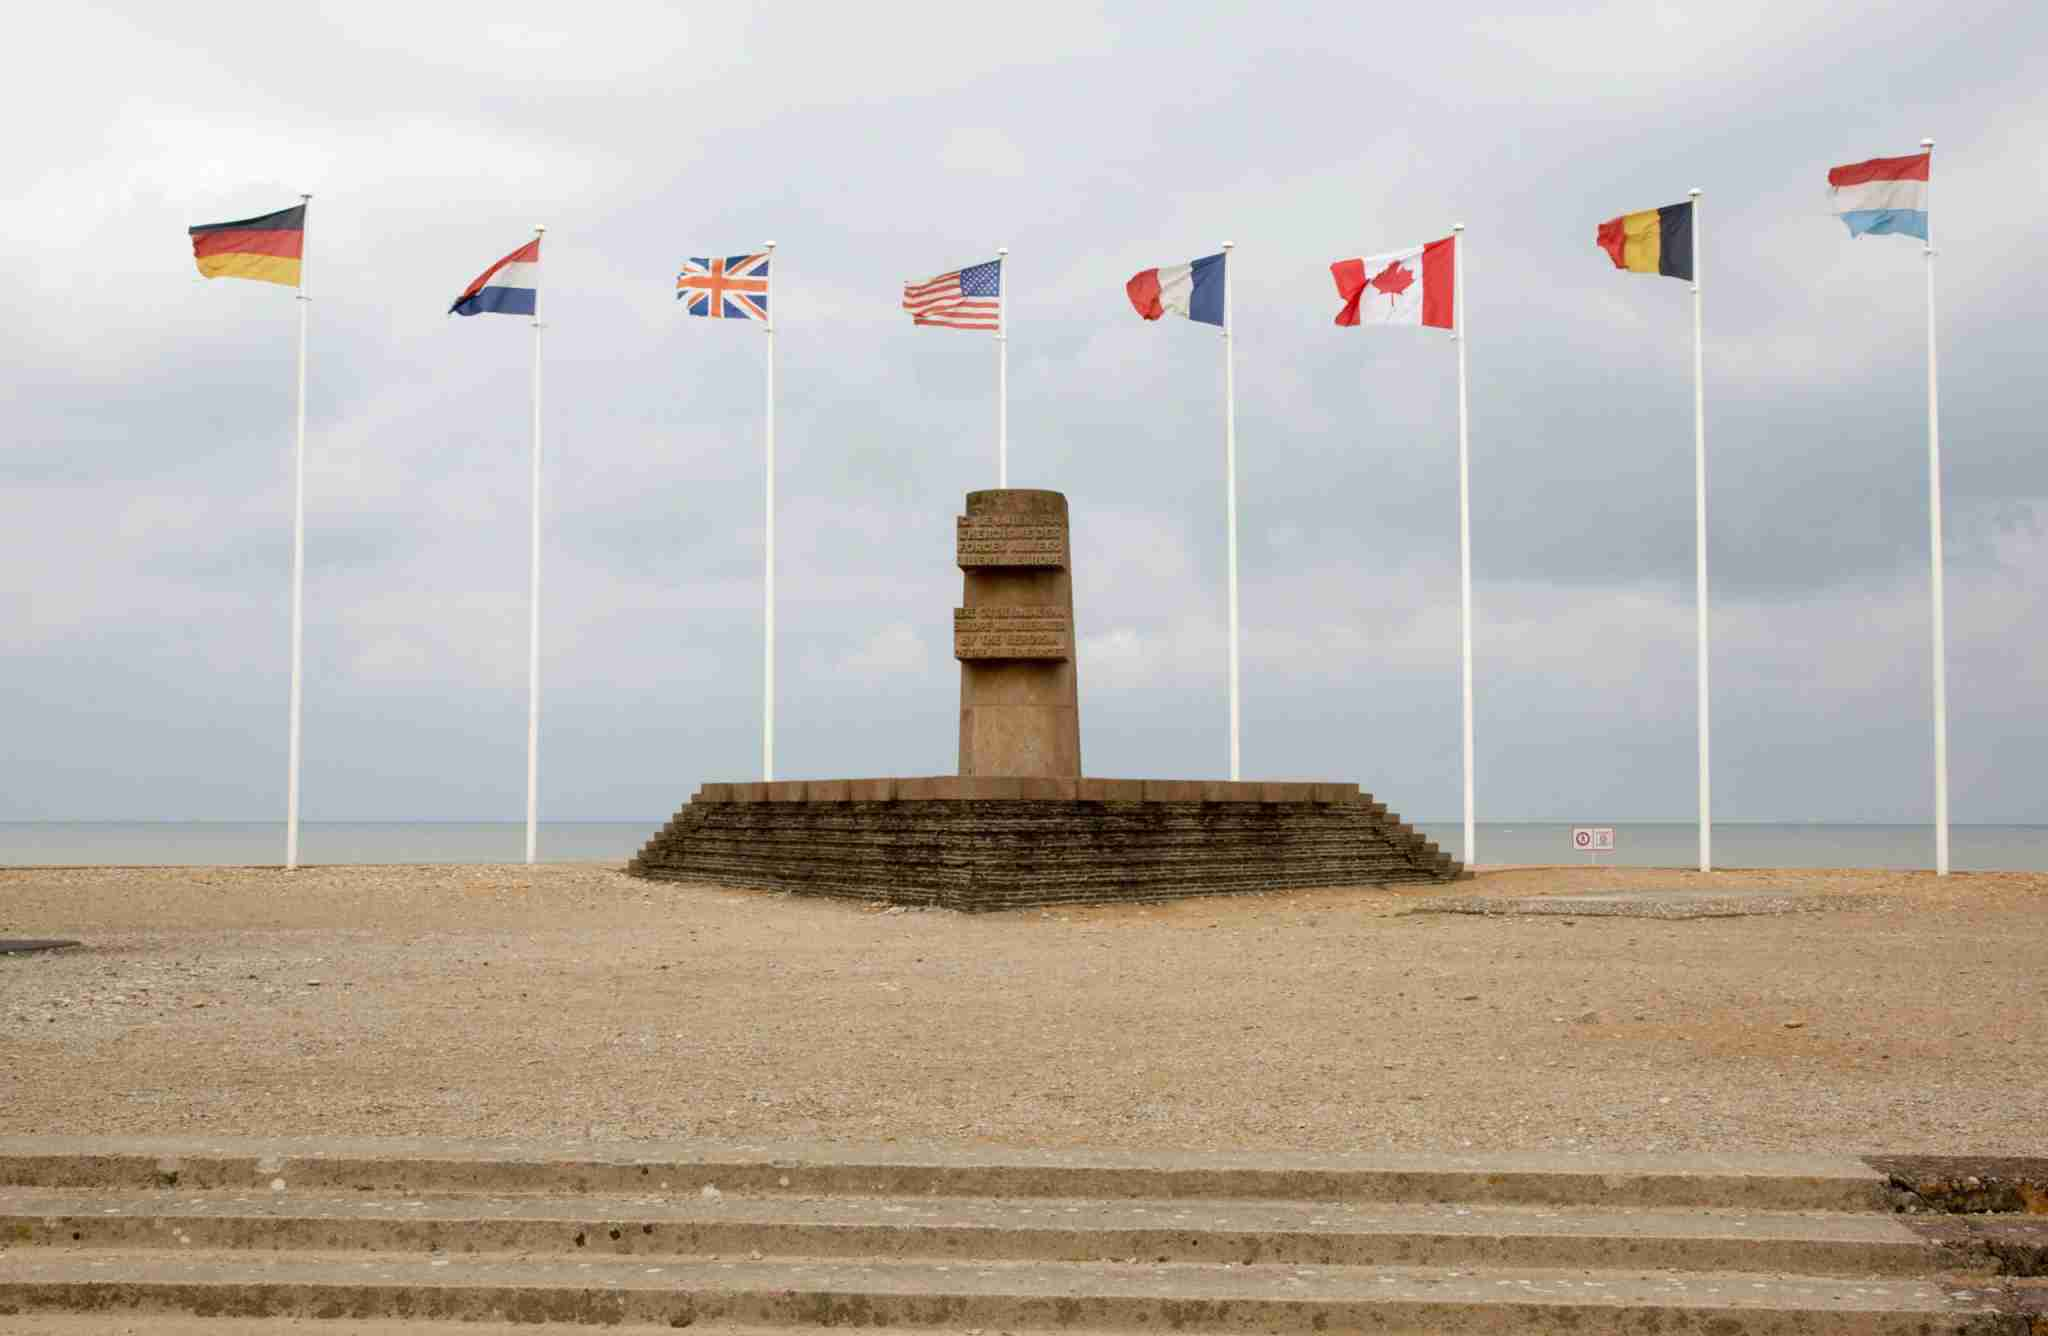 Memorial to WW2 soldiers Juno Beach Normandy